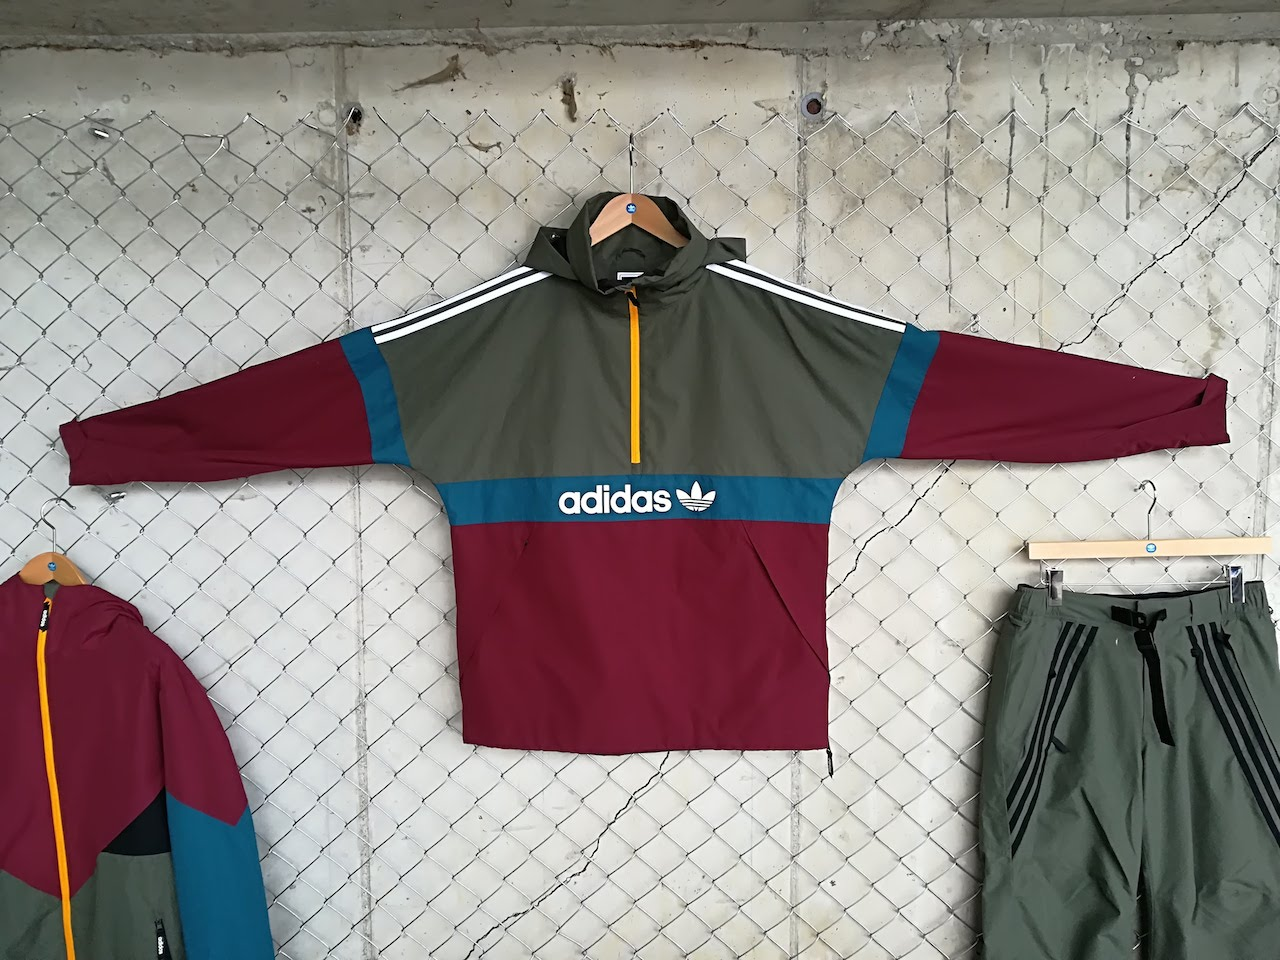 The Snow Breaker jacket is retro Adidas styling from the